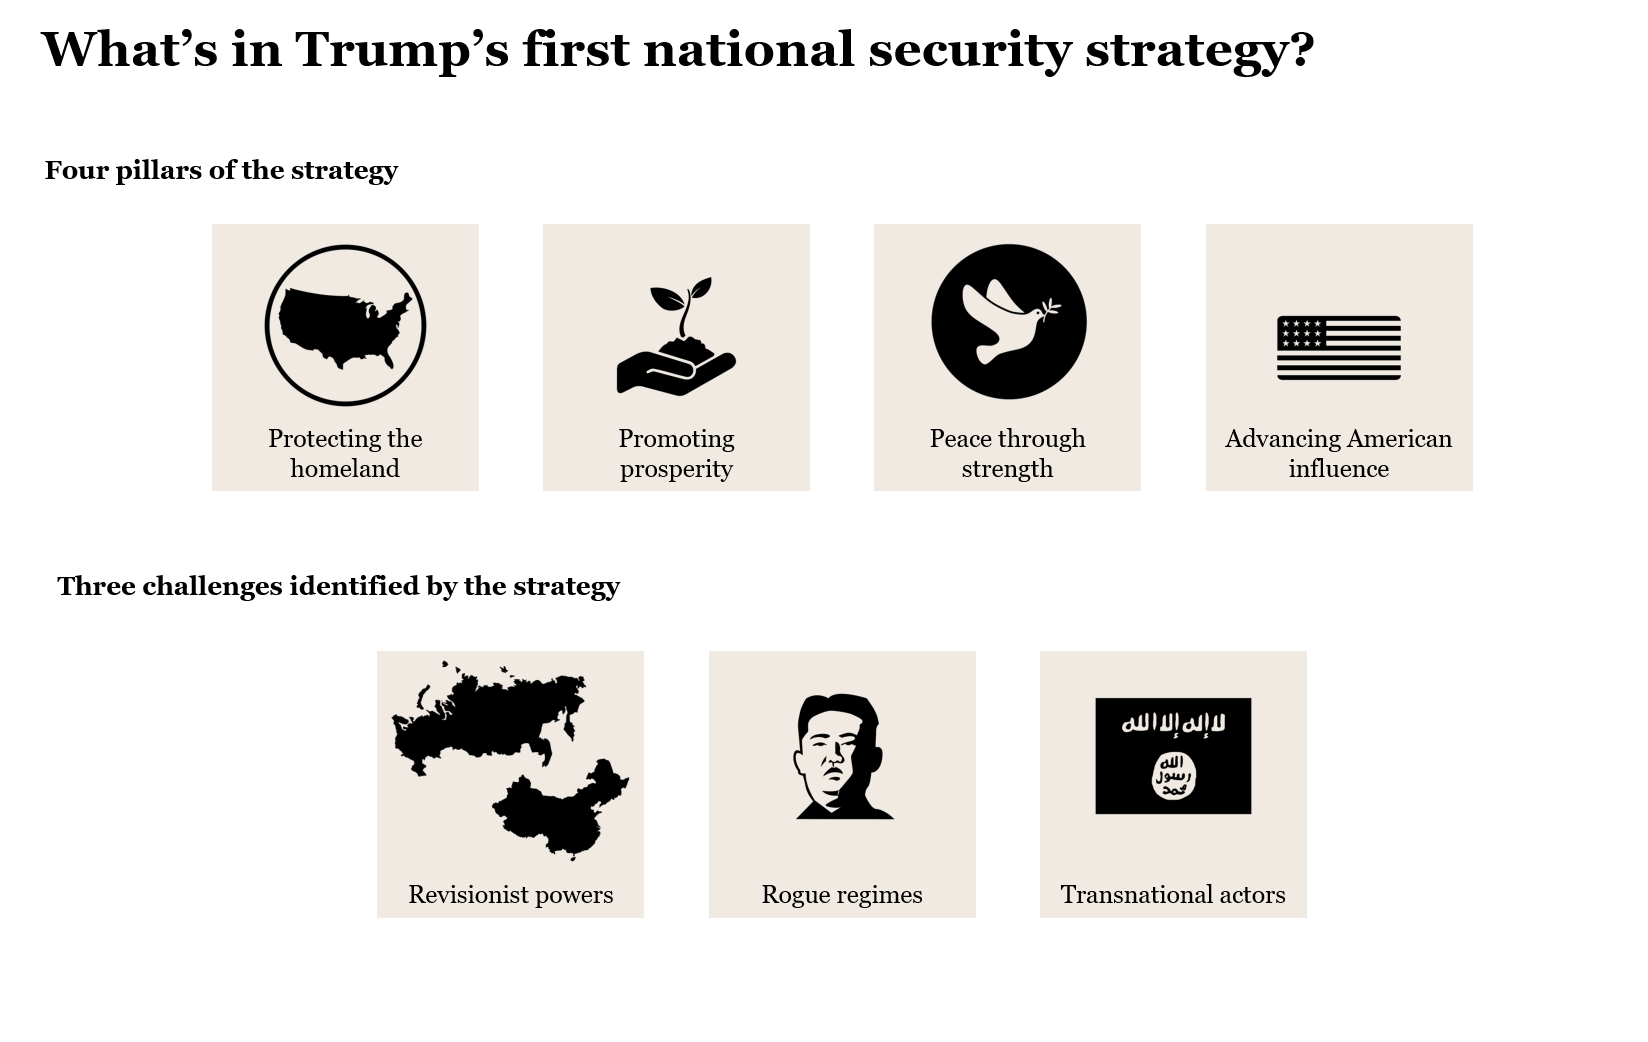 An overview of Trump's first national security strategy